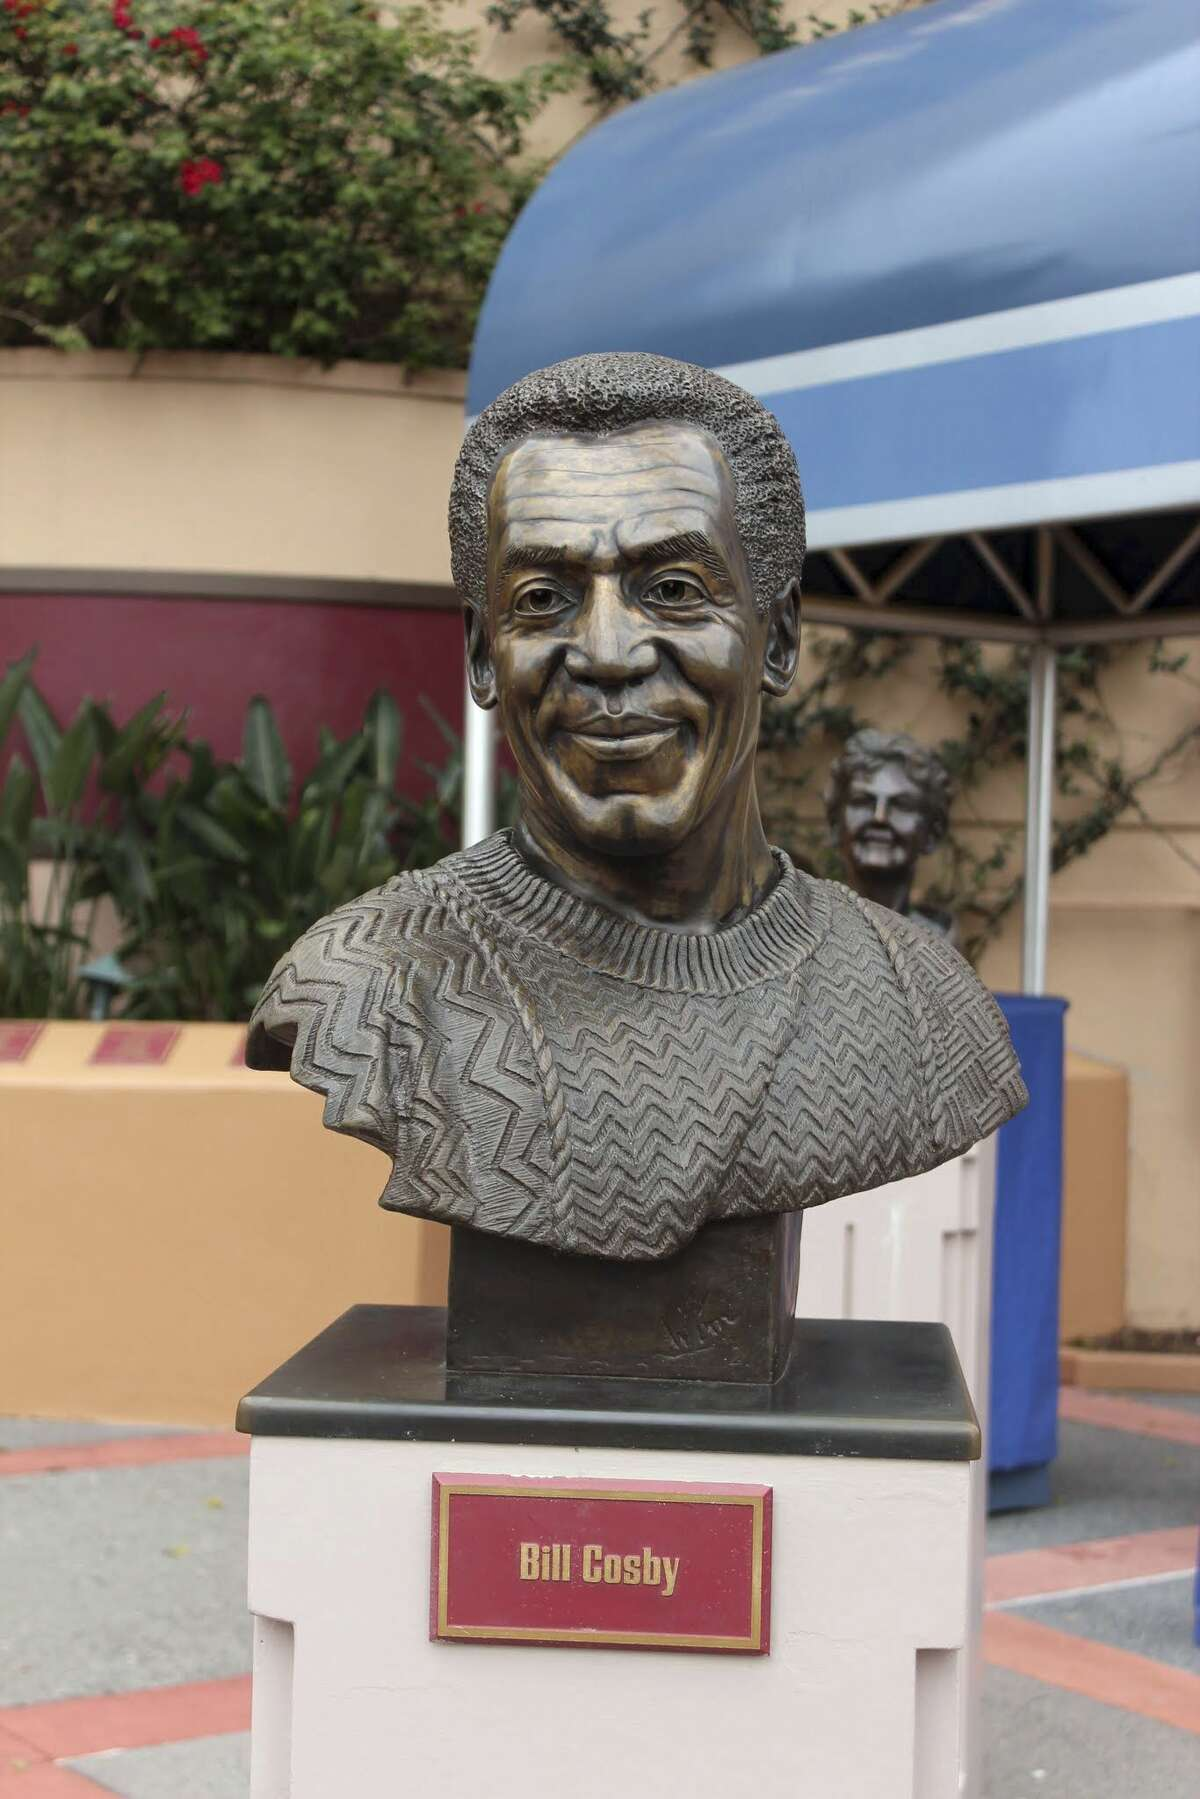 In this Feb. 26 photo, a bust of actor and comedian Bill Cosby is on display at Hollywood Studios theme park in Orlando, Fla. Local news outlets reported that Walt Disney World officials removed the bust from the park late July 7 after court documents unsealed Monday revealed that Cosby testified in 2005 that he obtained Quaaludes with the intent of giving them to women he wanted to have sex with.